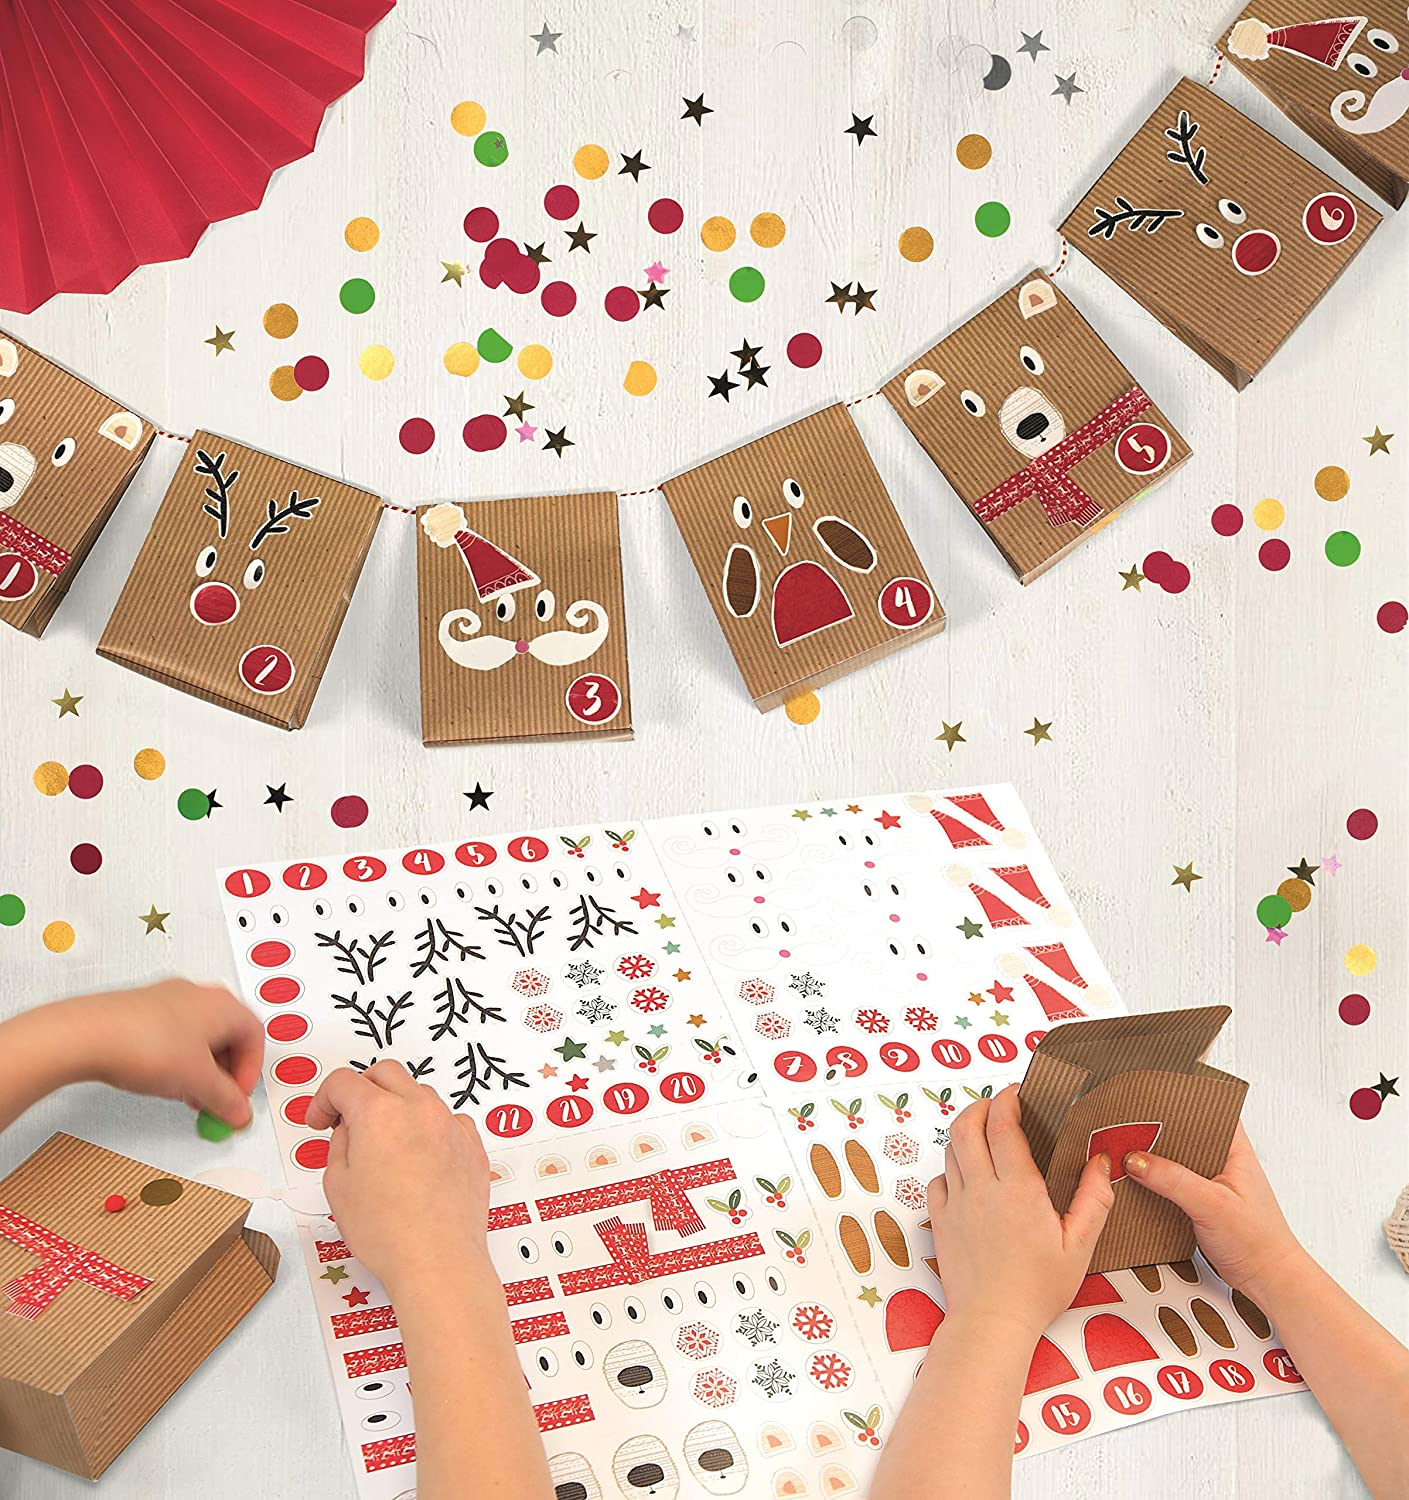 On The Wall Make Your Own 25 Day Christmas Garland Advent Calendar - 2 metres iparty Limited